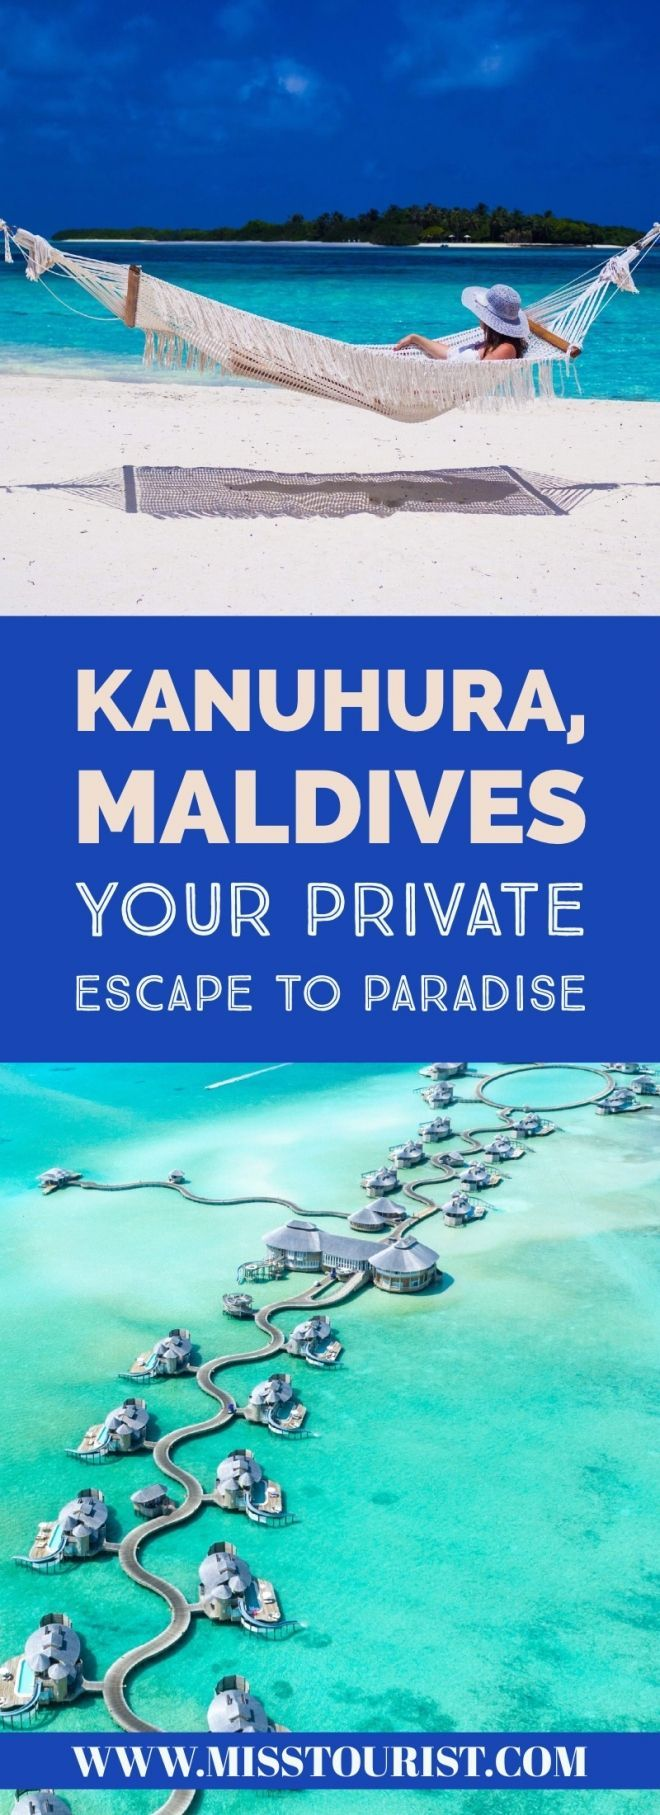 Here is what you can expect by staying in one of the most luxurious resorts in the Maldives: Kanuhura! Find out how to get there, what are the facilities, services, prices and more!   Honeymoon, Resort, Island, Photography, Things To Do, Travel, All Inclusive, Sea of Stars, Water Villa, Beaches, Vacation, Bungalow, Diving